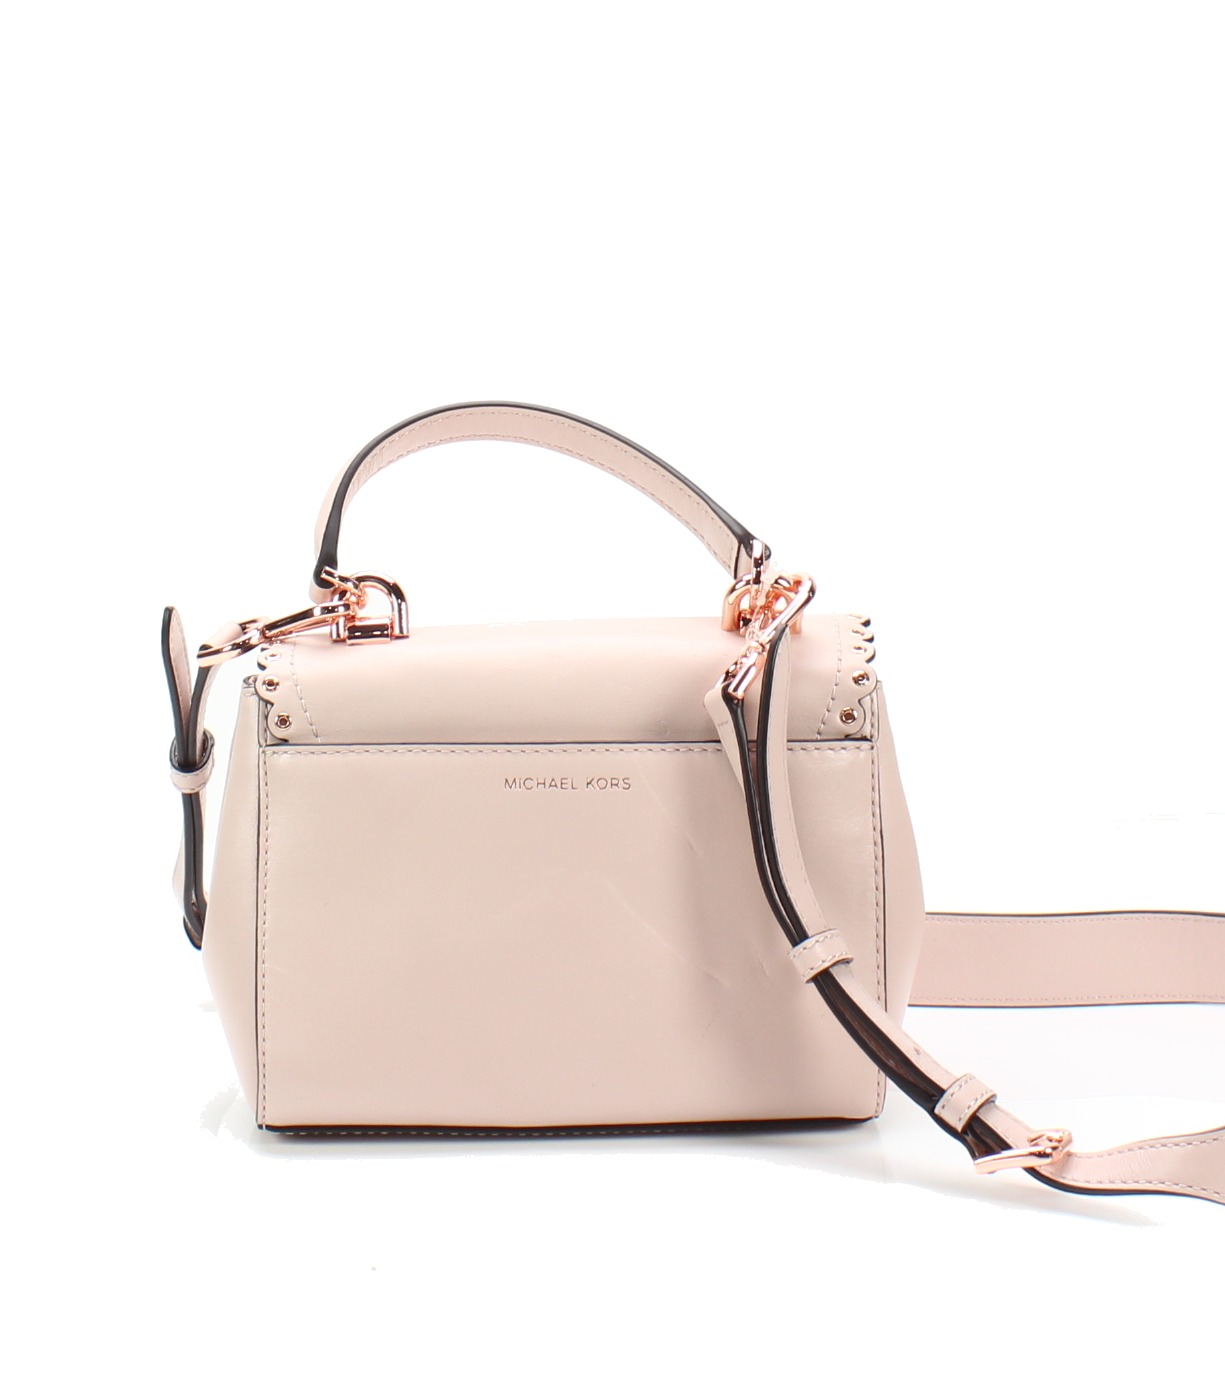 77a373fd568036 Michael Kors NEW Soft Pink Ava Extra-Small Scalloped Leather ...